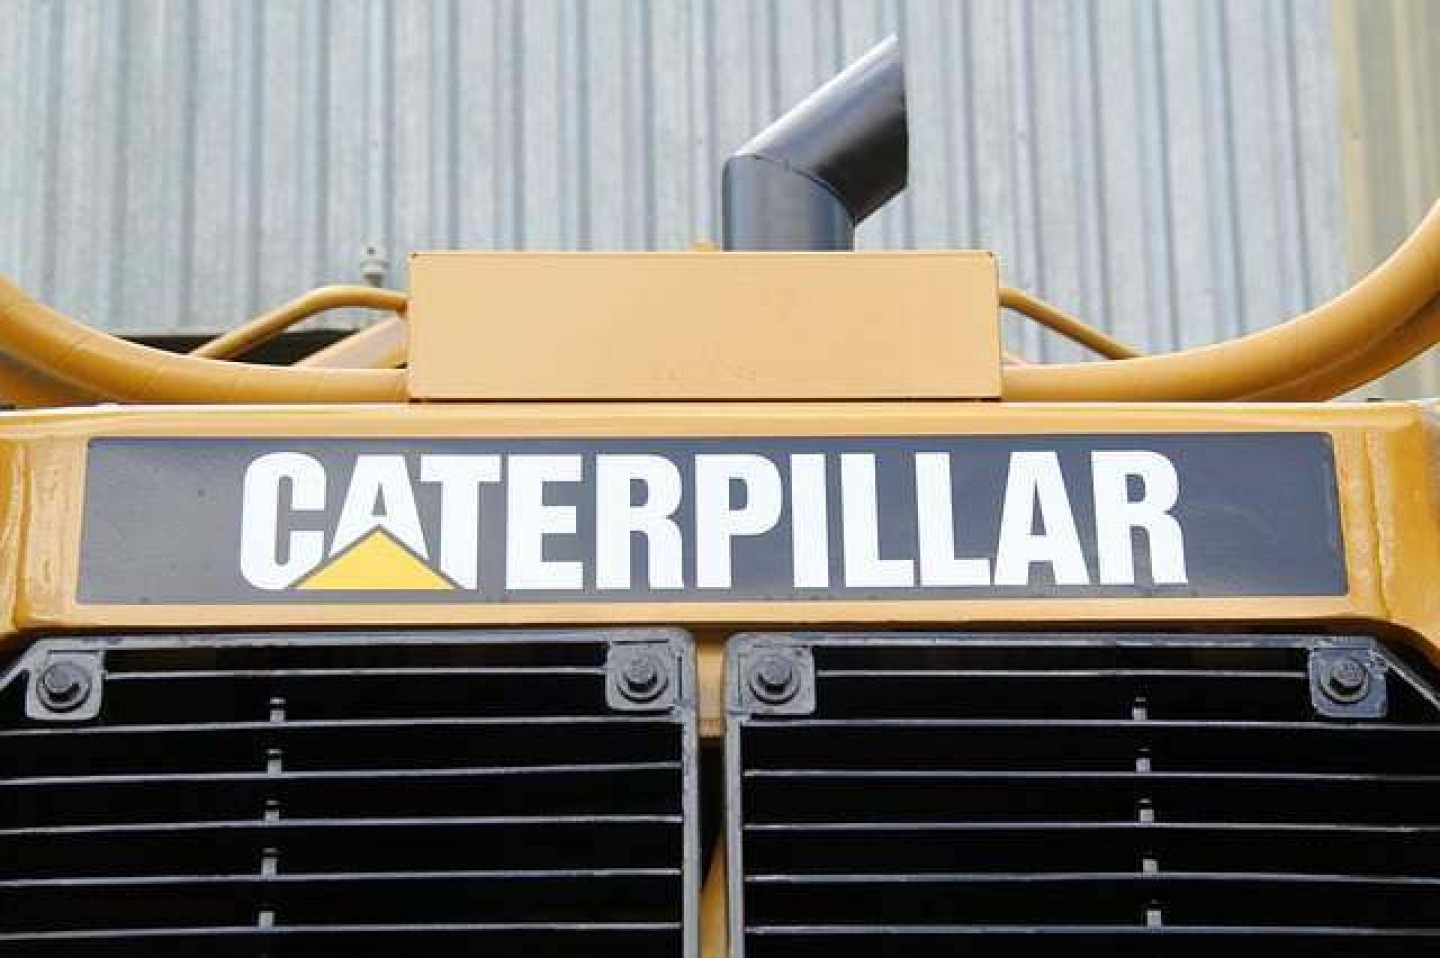 Dinamo-zdj-caterpillar-478541_640